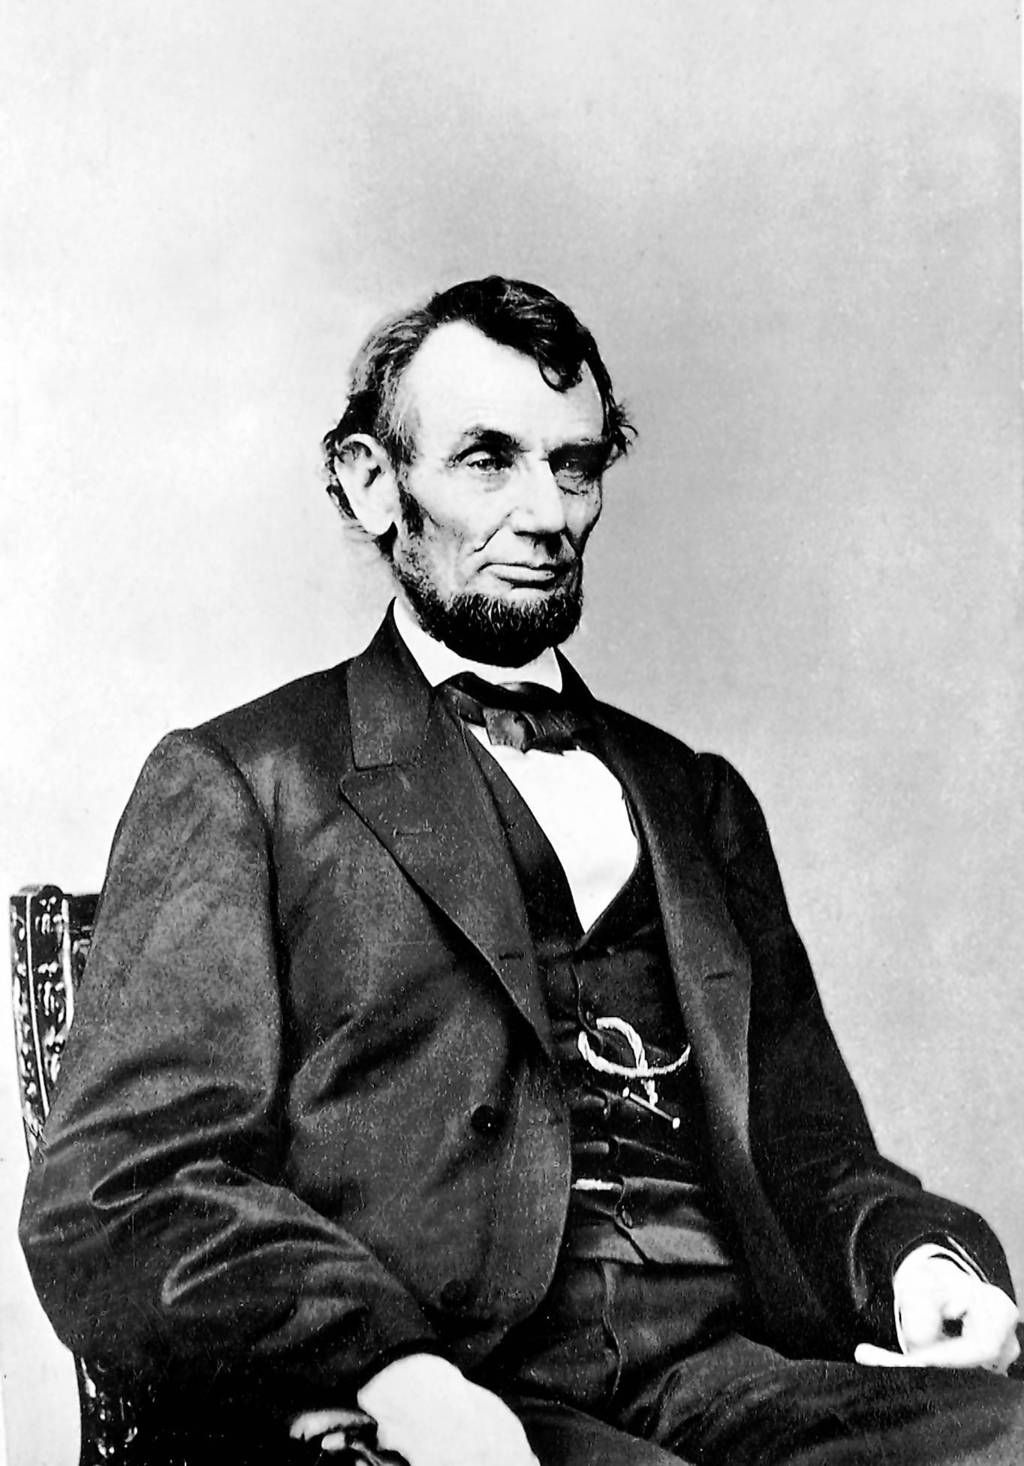 Abrahamlincoln Grew A Beard In Late 1860 After Getting